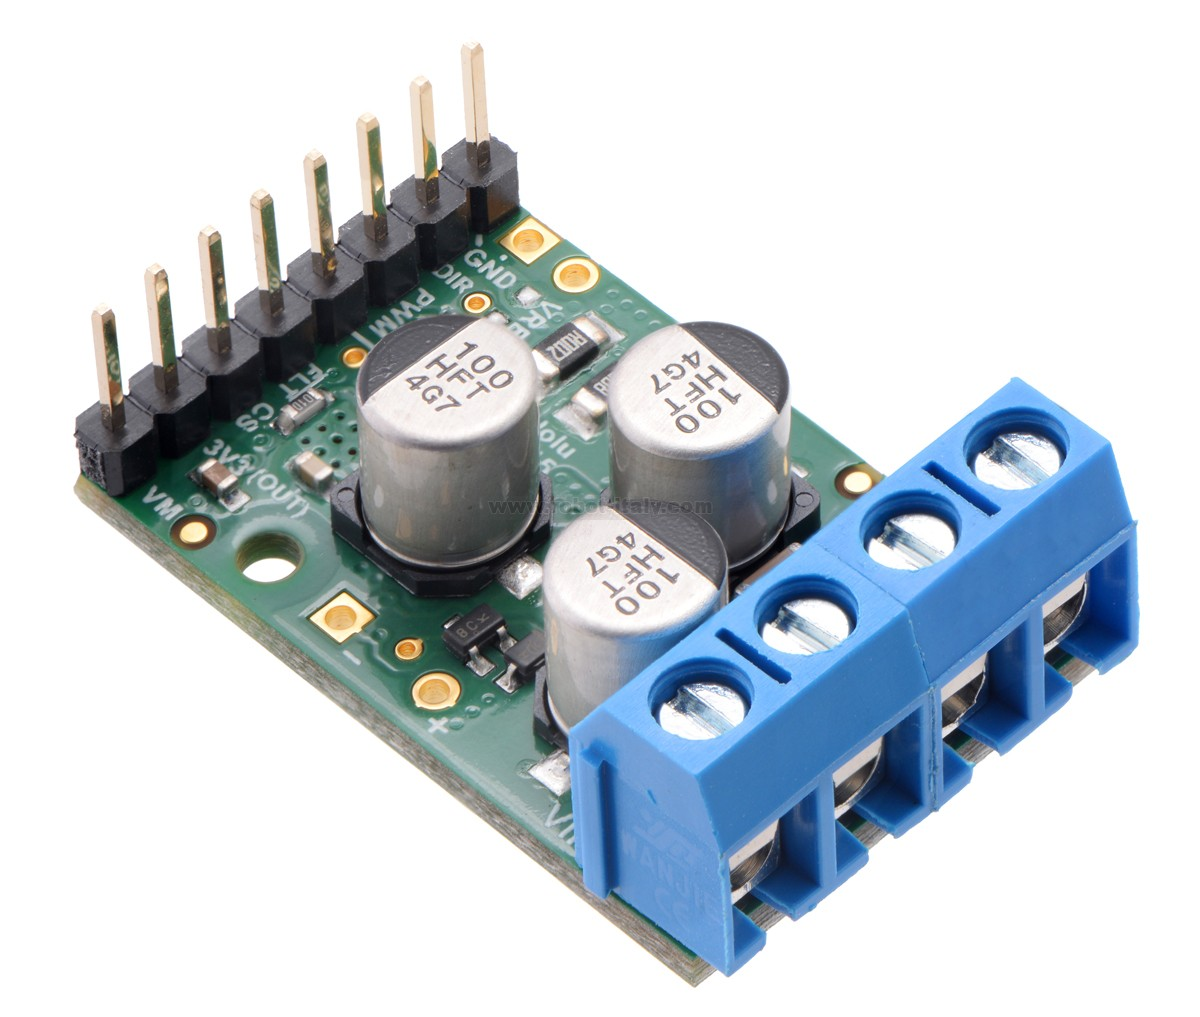 342994 2994 Pololu G2 High Power Motor Driver 18v25 Da Driving N Channel Mosfets With A Microcontroller This Discrete Mosfet H Bridge Enables Bidirectional Control Of One Dc Brushed The Small 13 08 Board Supports Wide 65